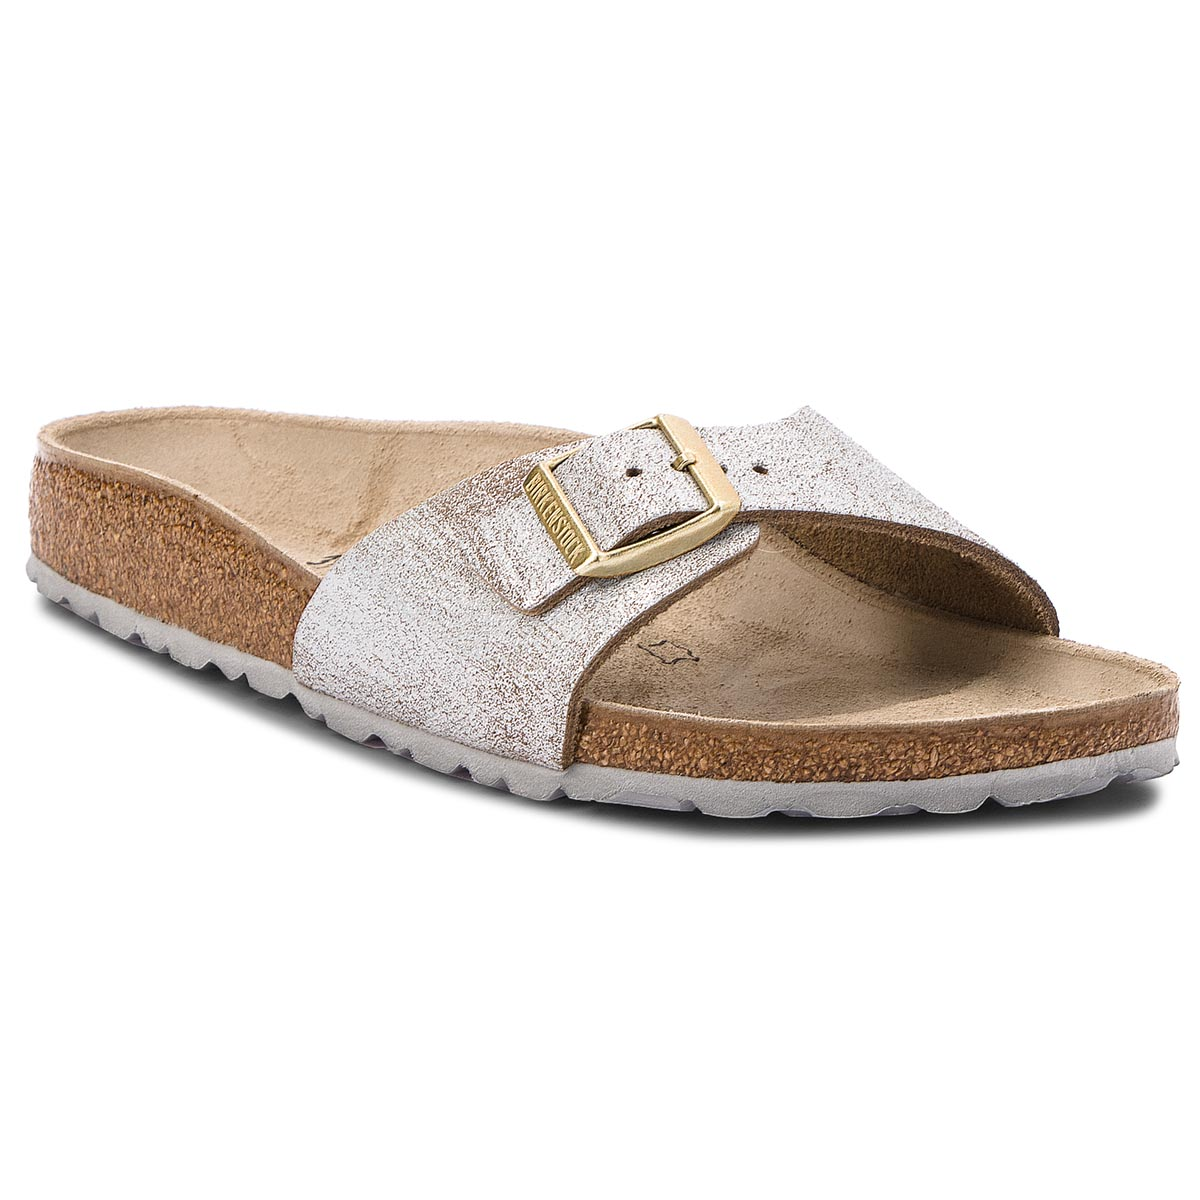 Klapki BIRKENSTOCK - Madrid Bs 1008694 Washed Metallic Blue Silver